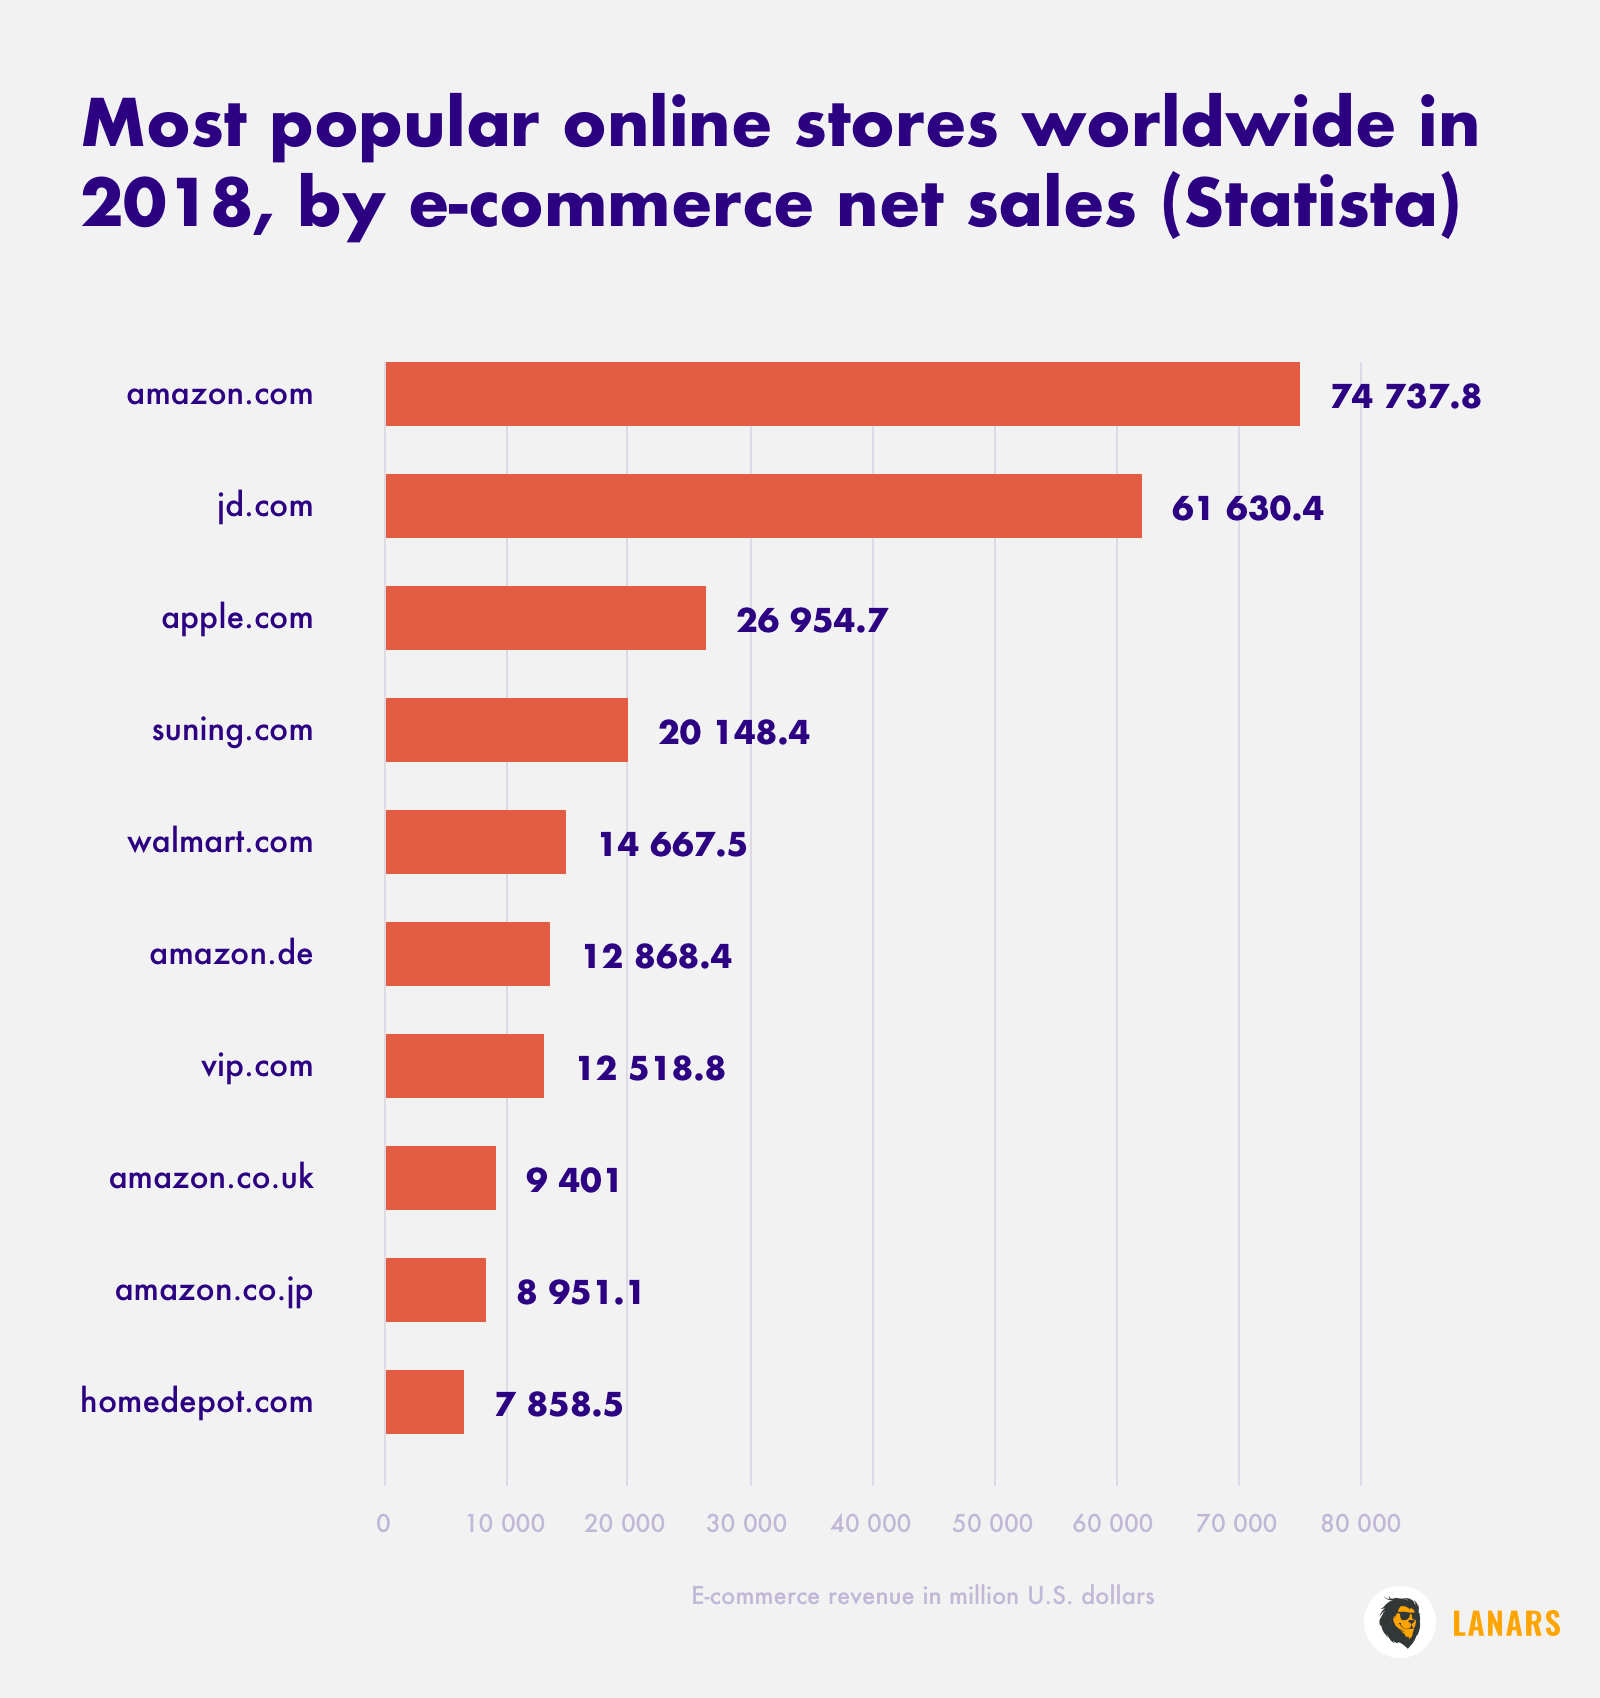 Most popular online stores worldwide in 2018, by e-commerce net sales (Statista)